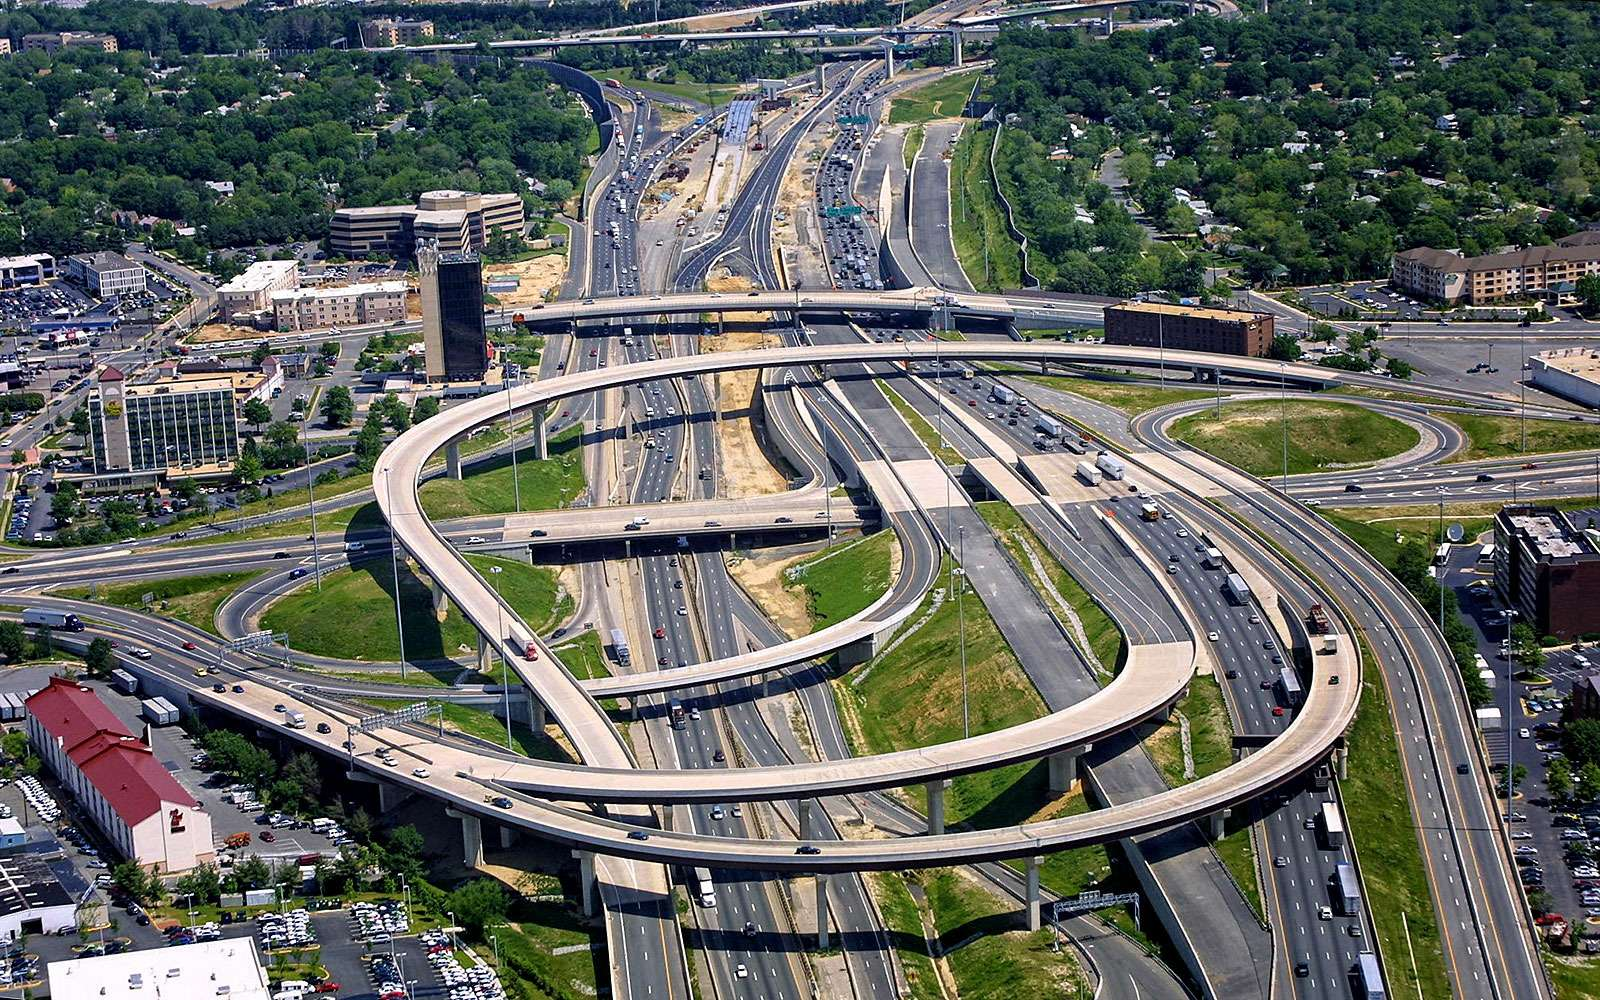 Springfield Interchange, Спрингфилд, Вирджиния, США.